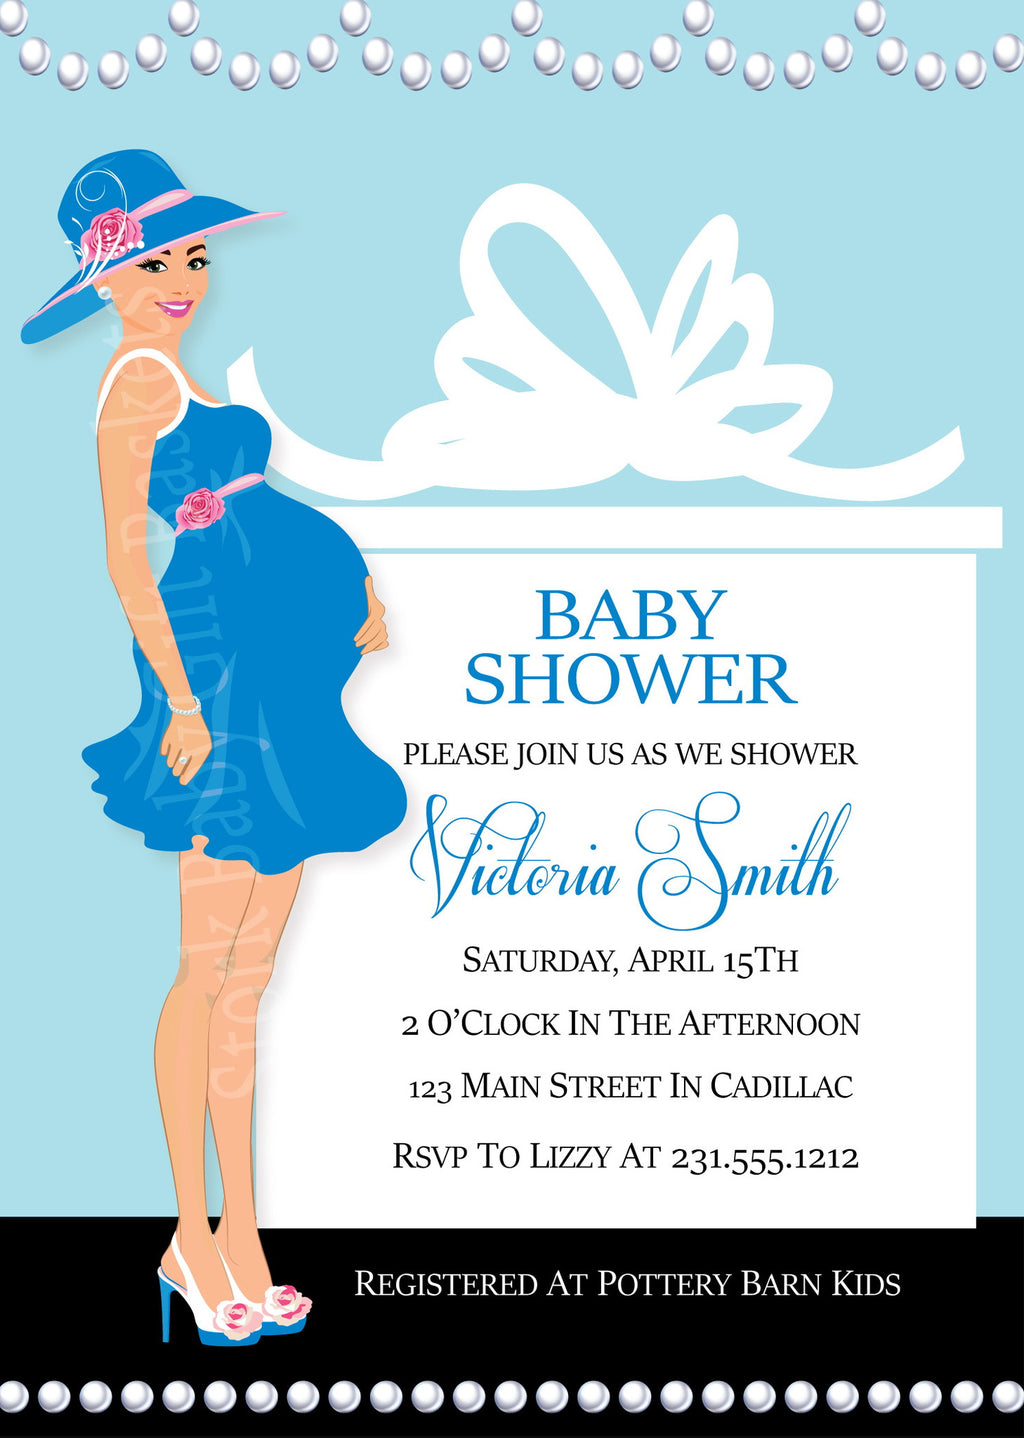 Baby Shower Invitations - Stork Baby Gift Baskets ...